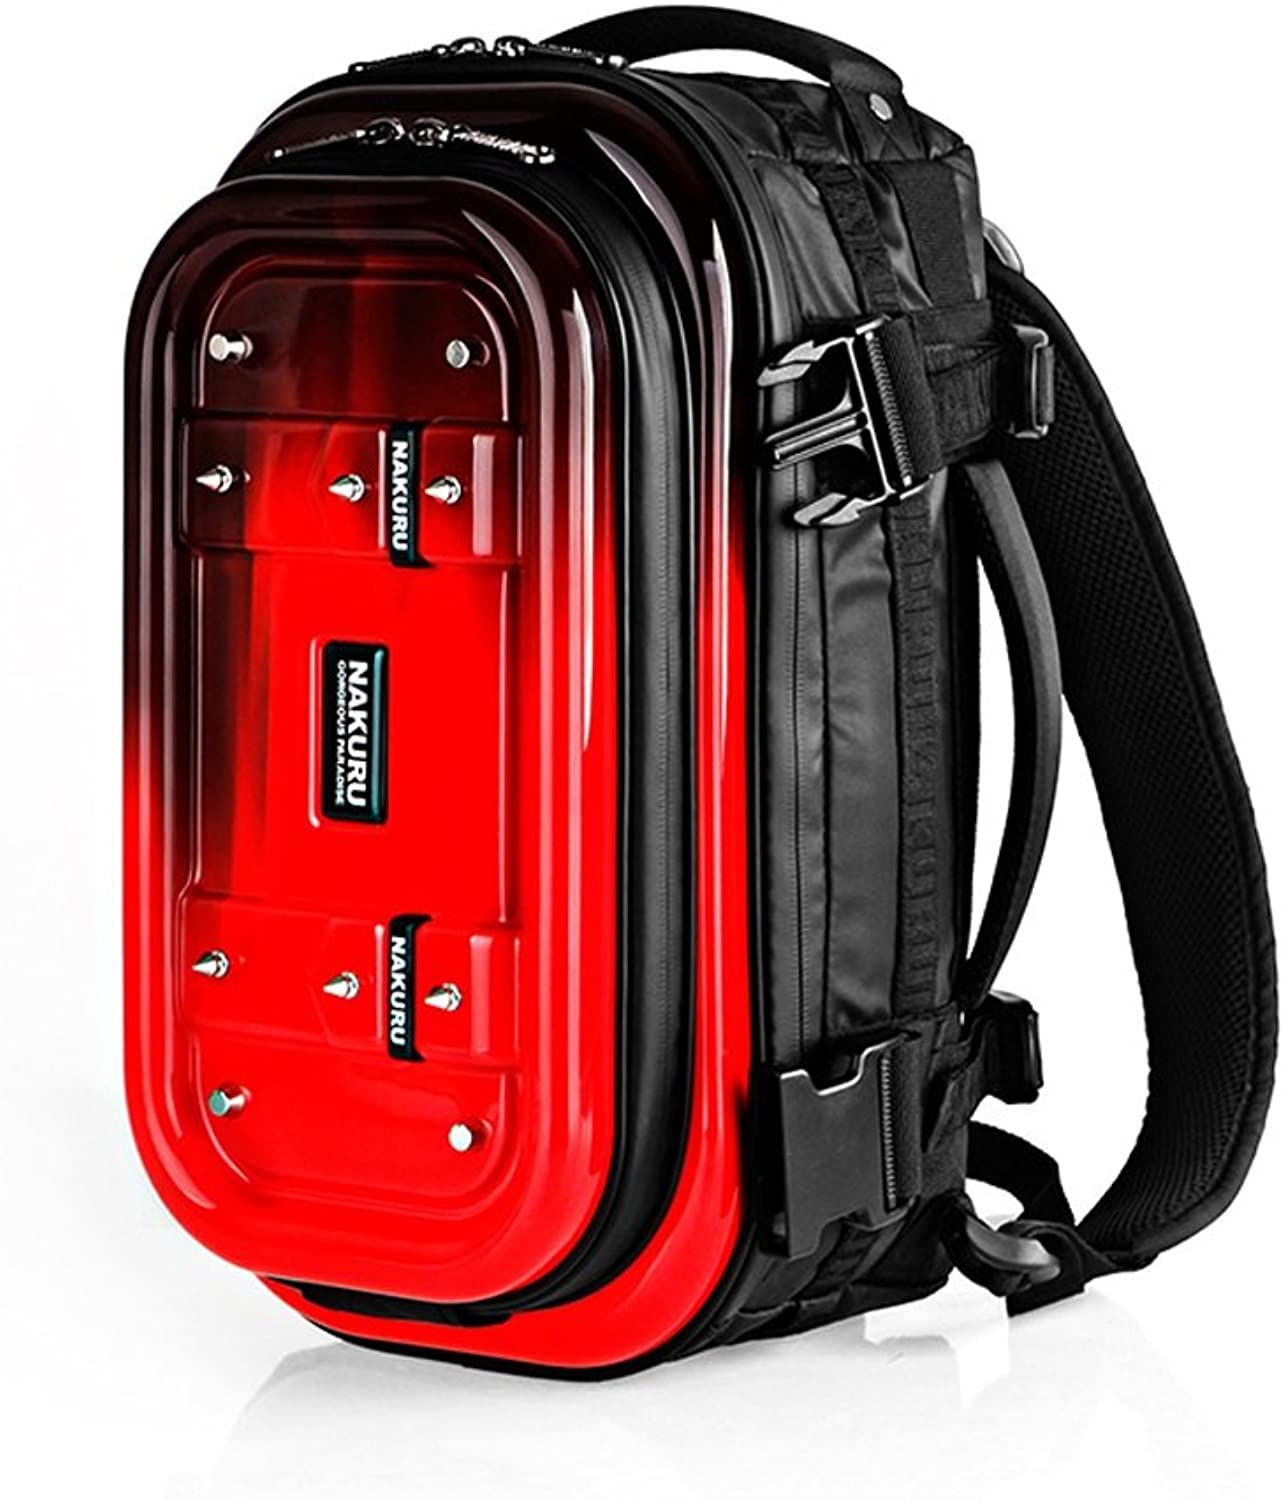 Men's And Women's Backpack Photography Backpack Short Trip Outdoor Suitcase, Student Bag Casual Backpack, Hiking camping outdoor